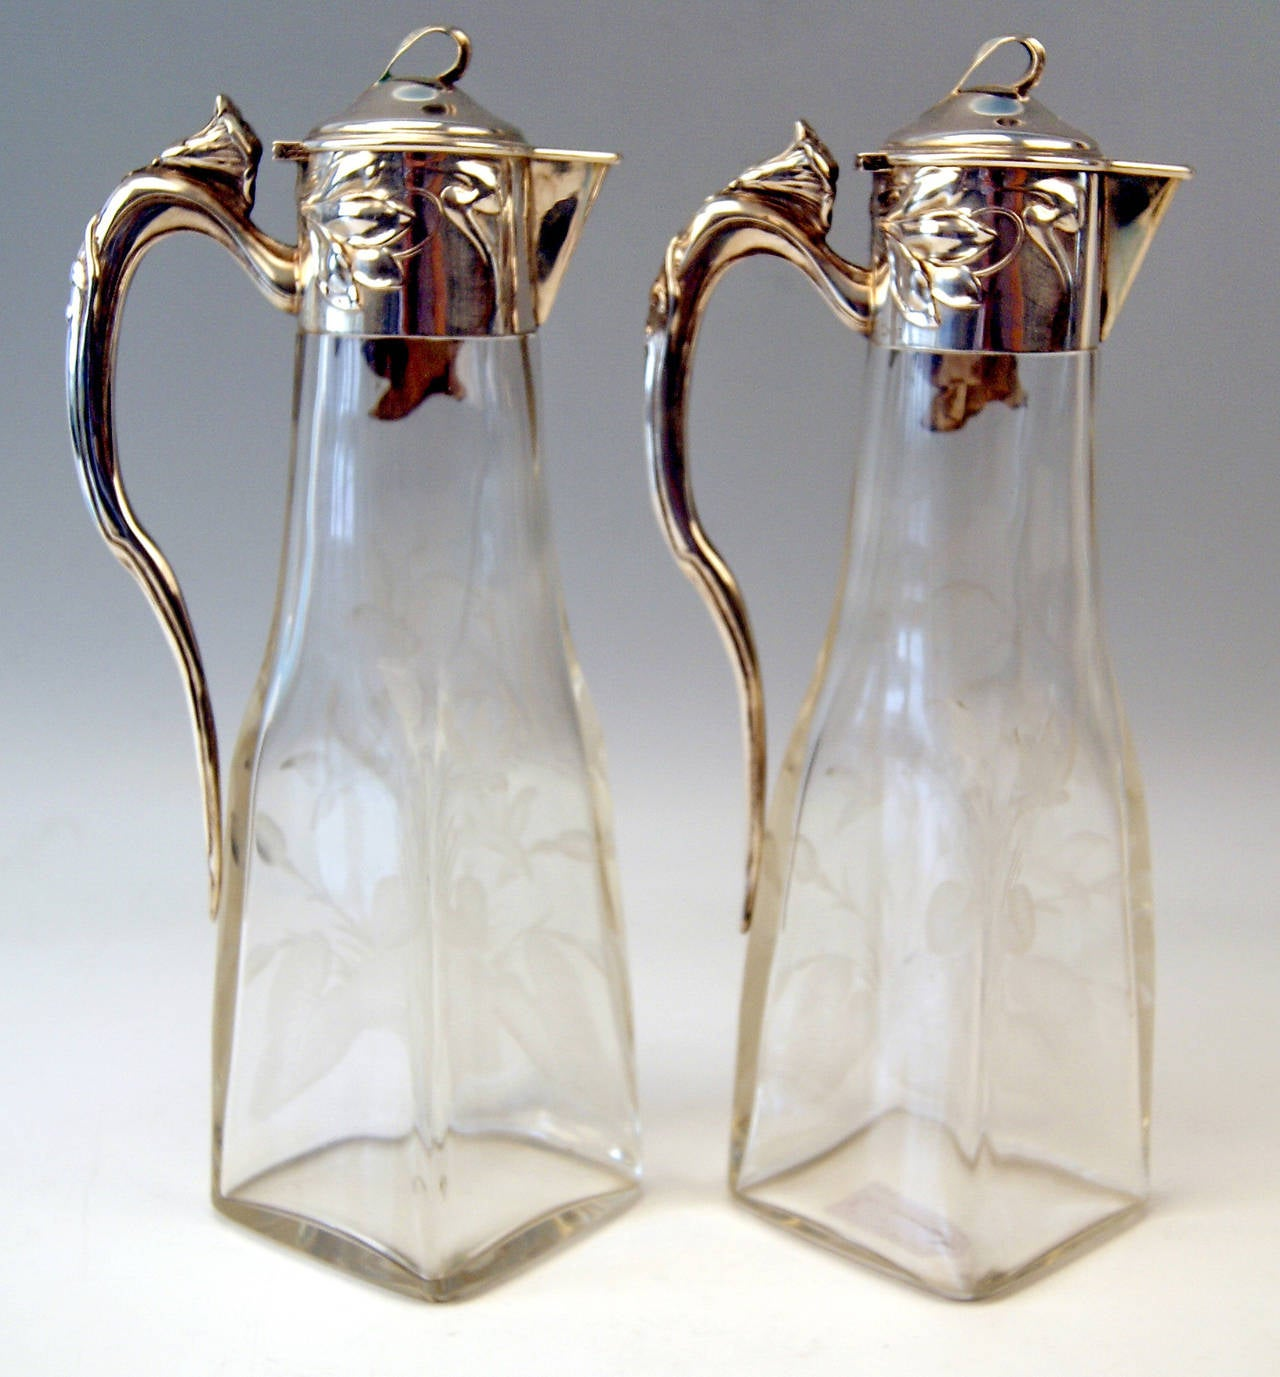 Silver Art Nouveau German Pair of Glass Decanters by Otto Wolter, circa 1900 2